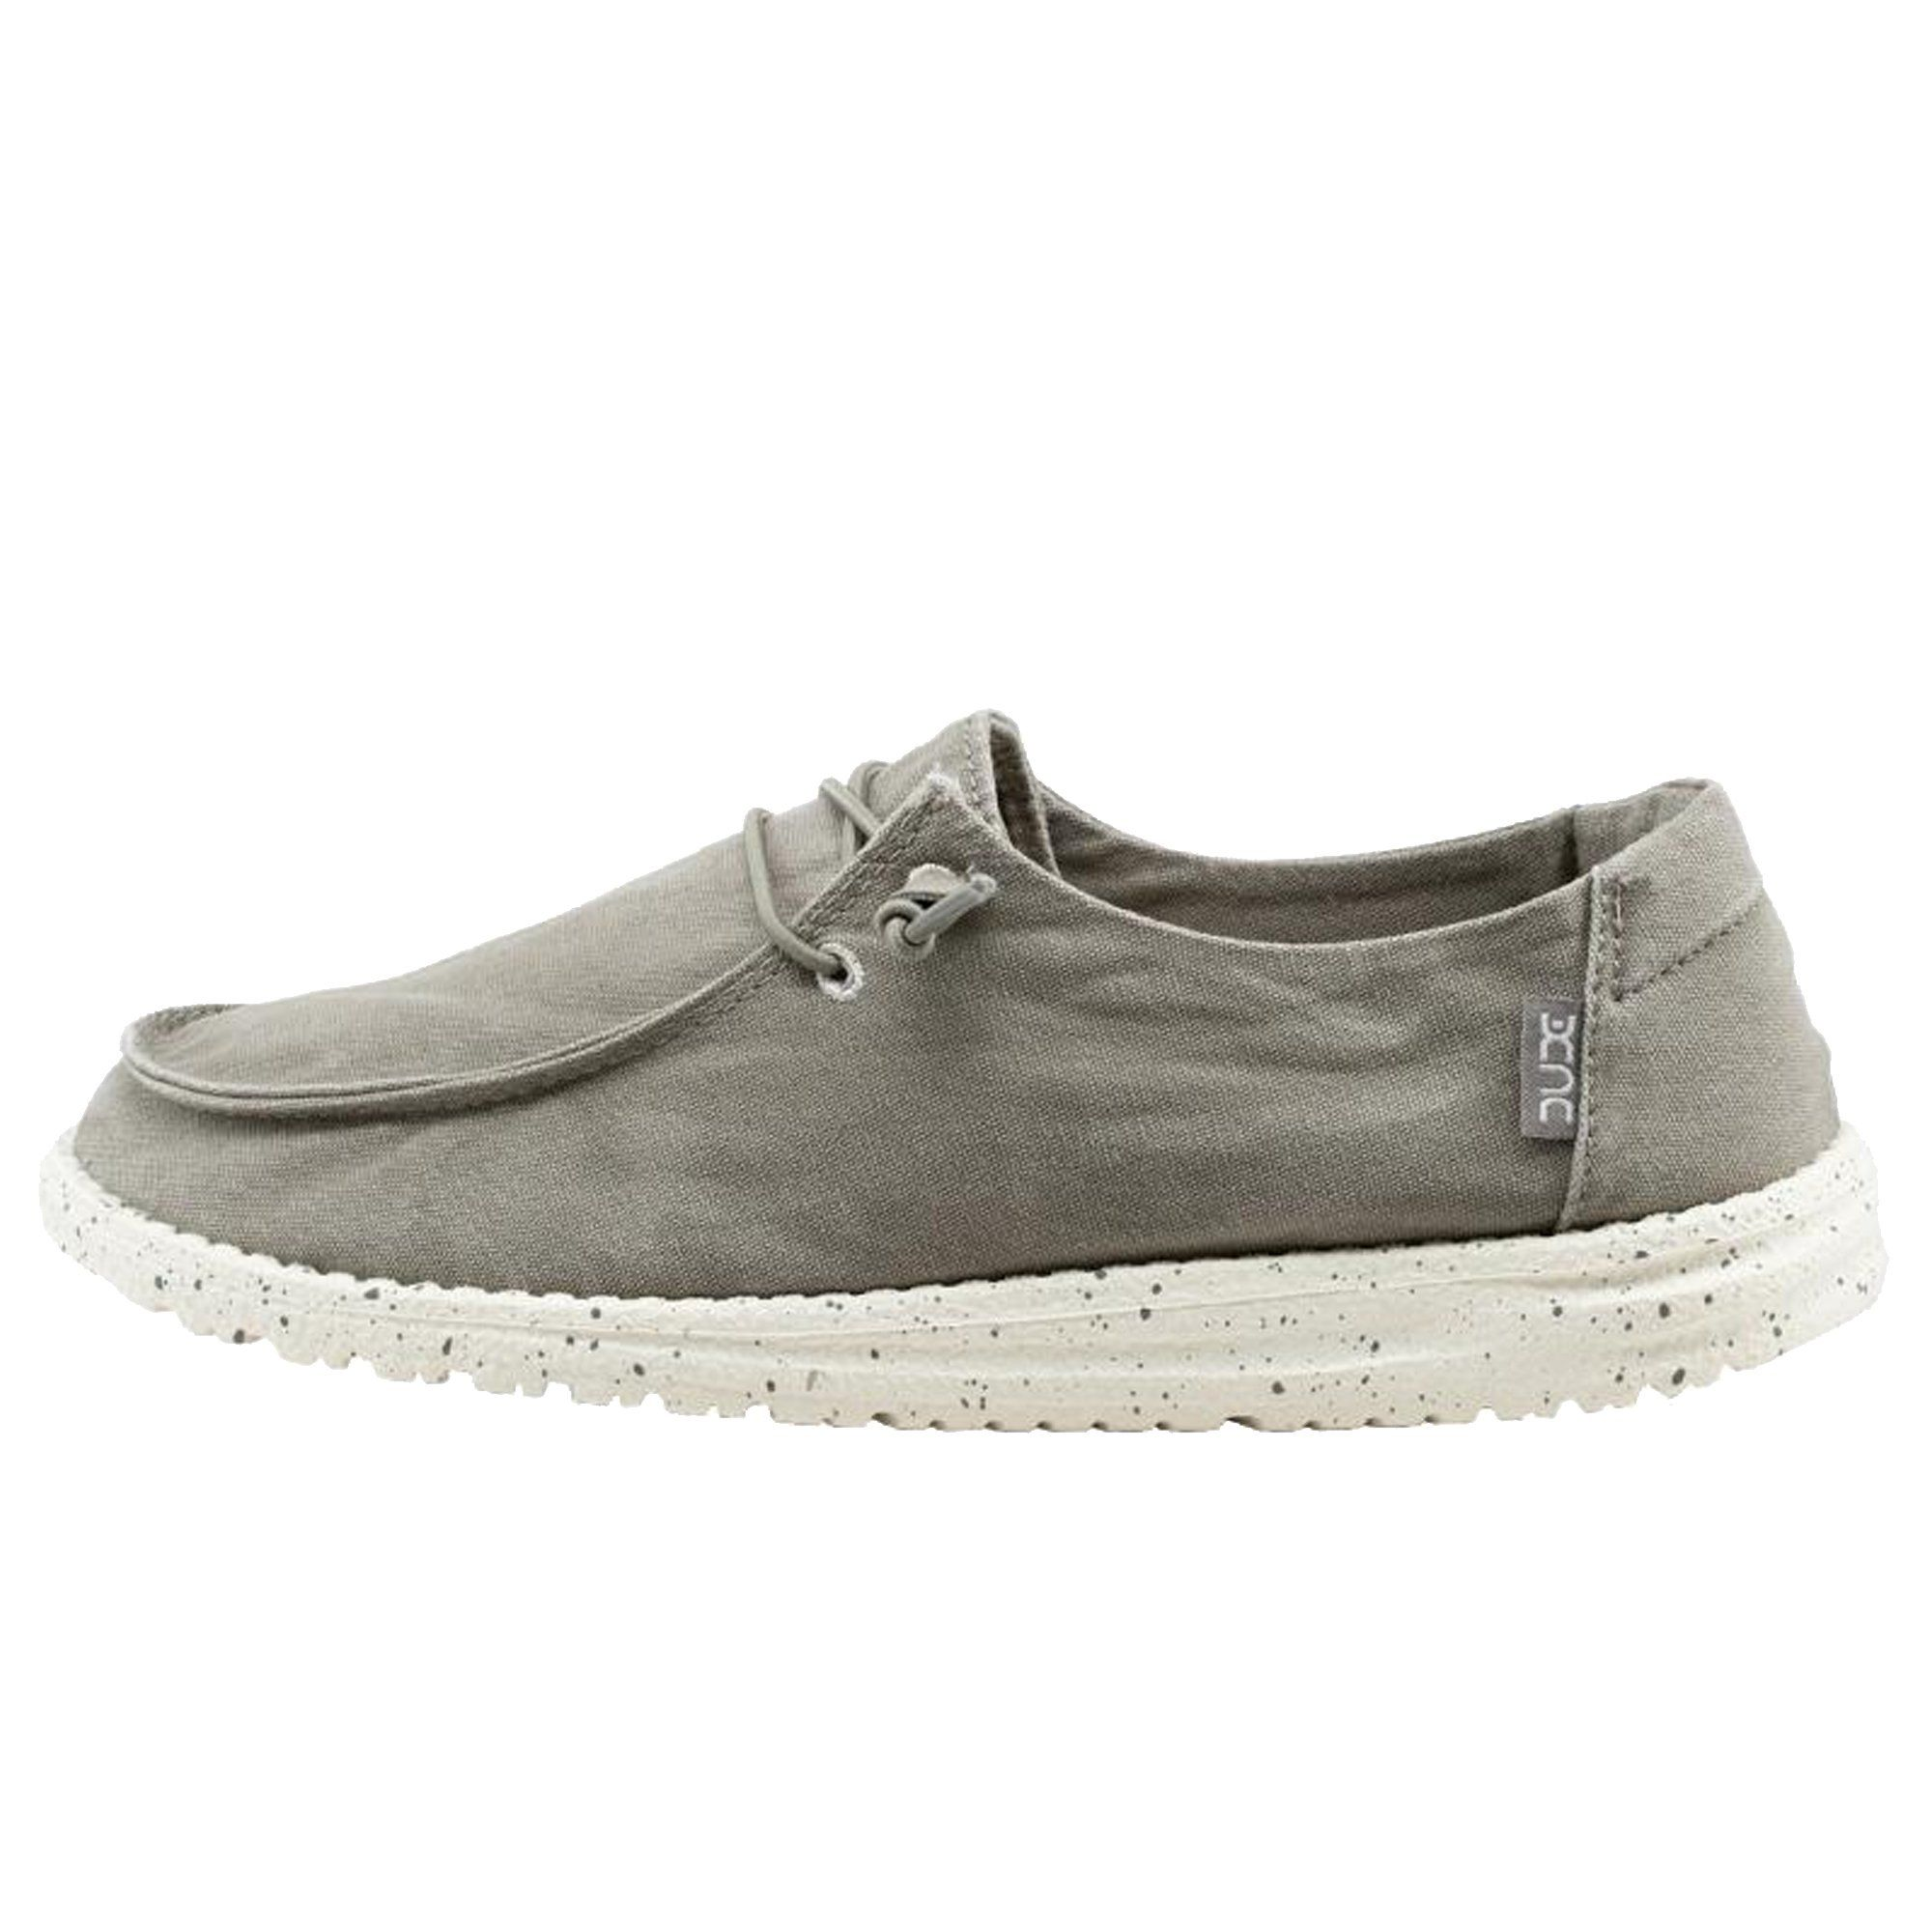 Hey Dude Shoes Women's Wendy Shoes